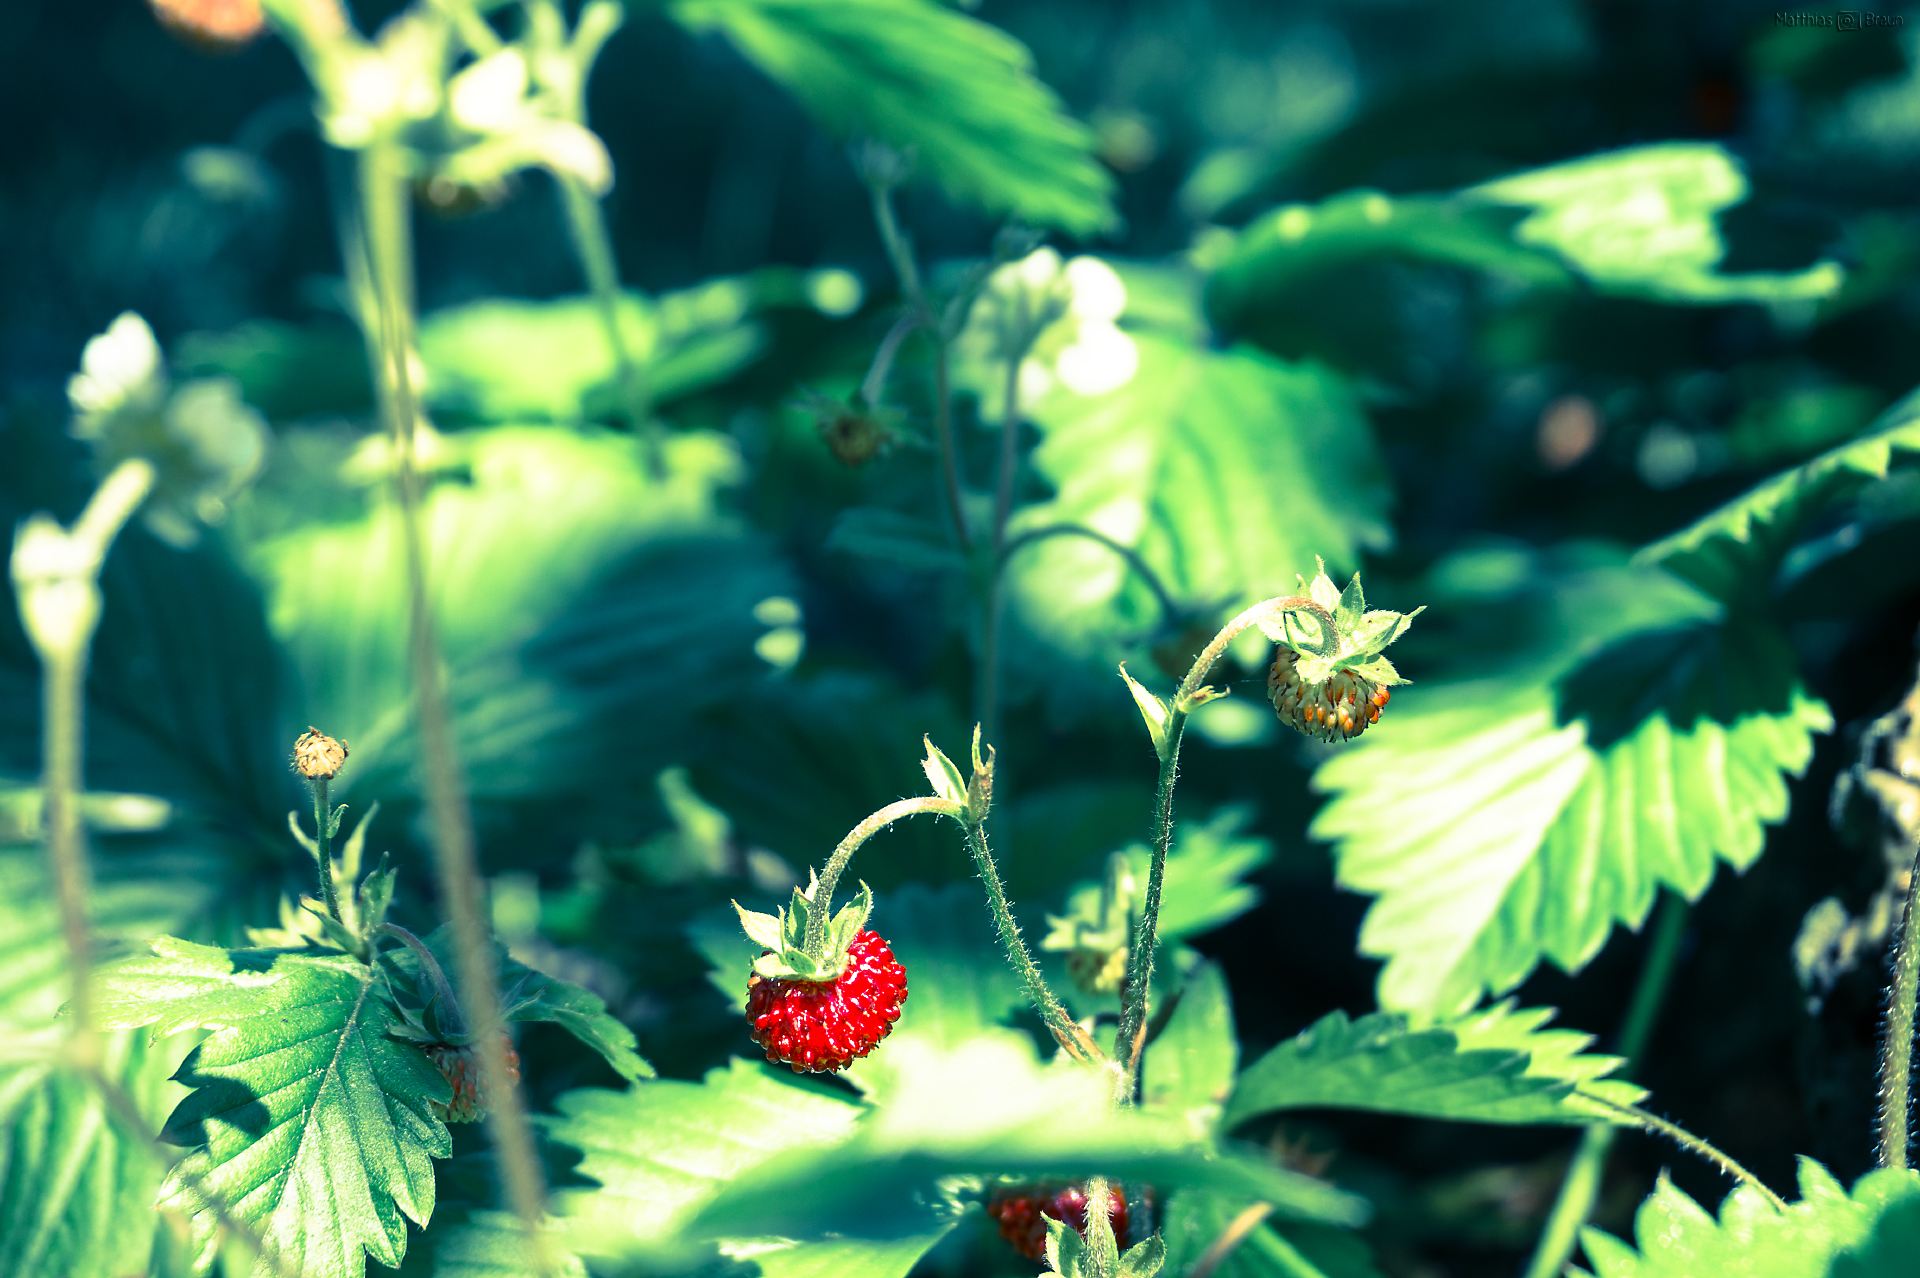 Wild Strawberry-Wilde Erdbeeren